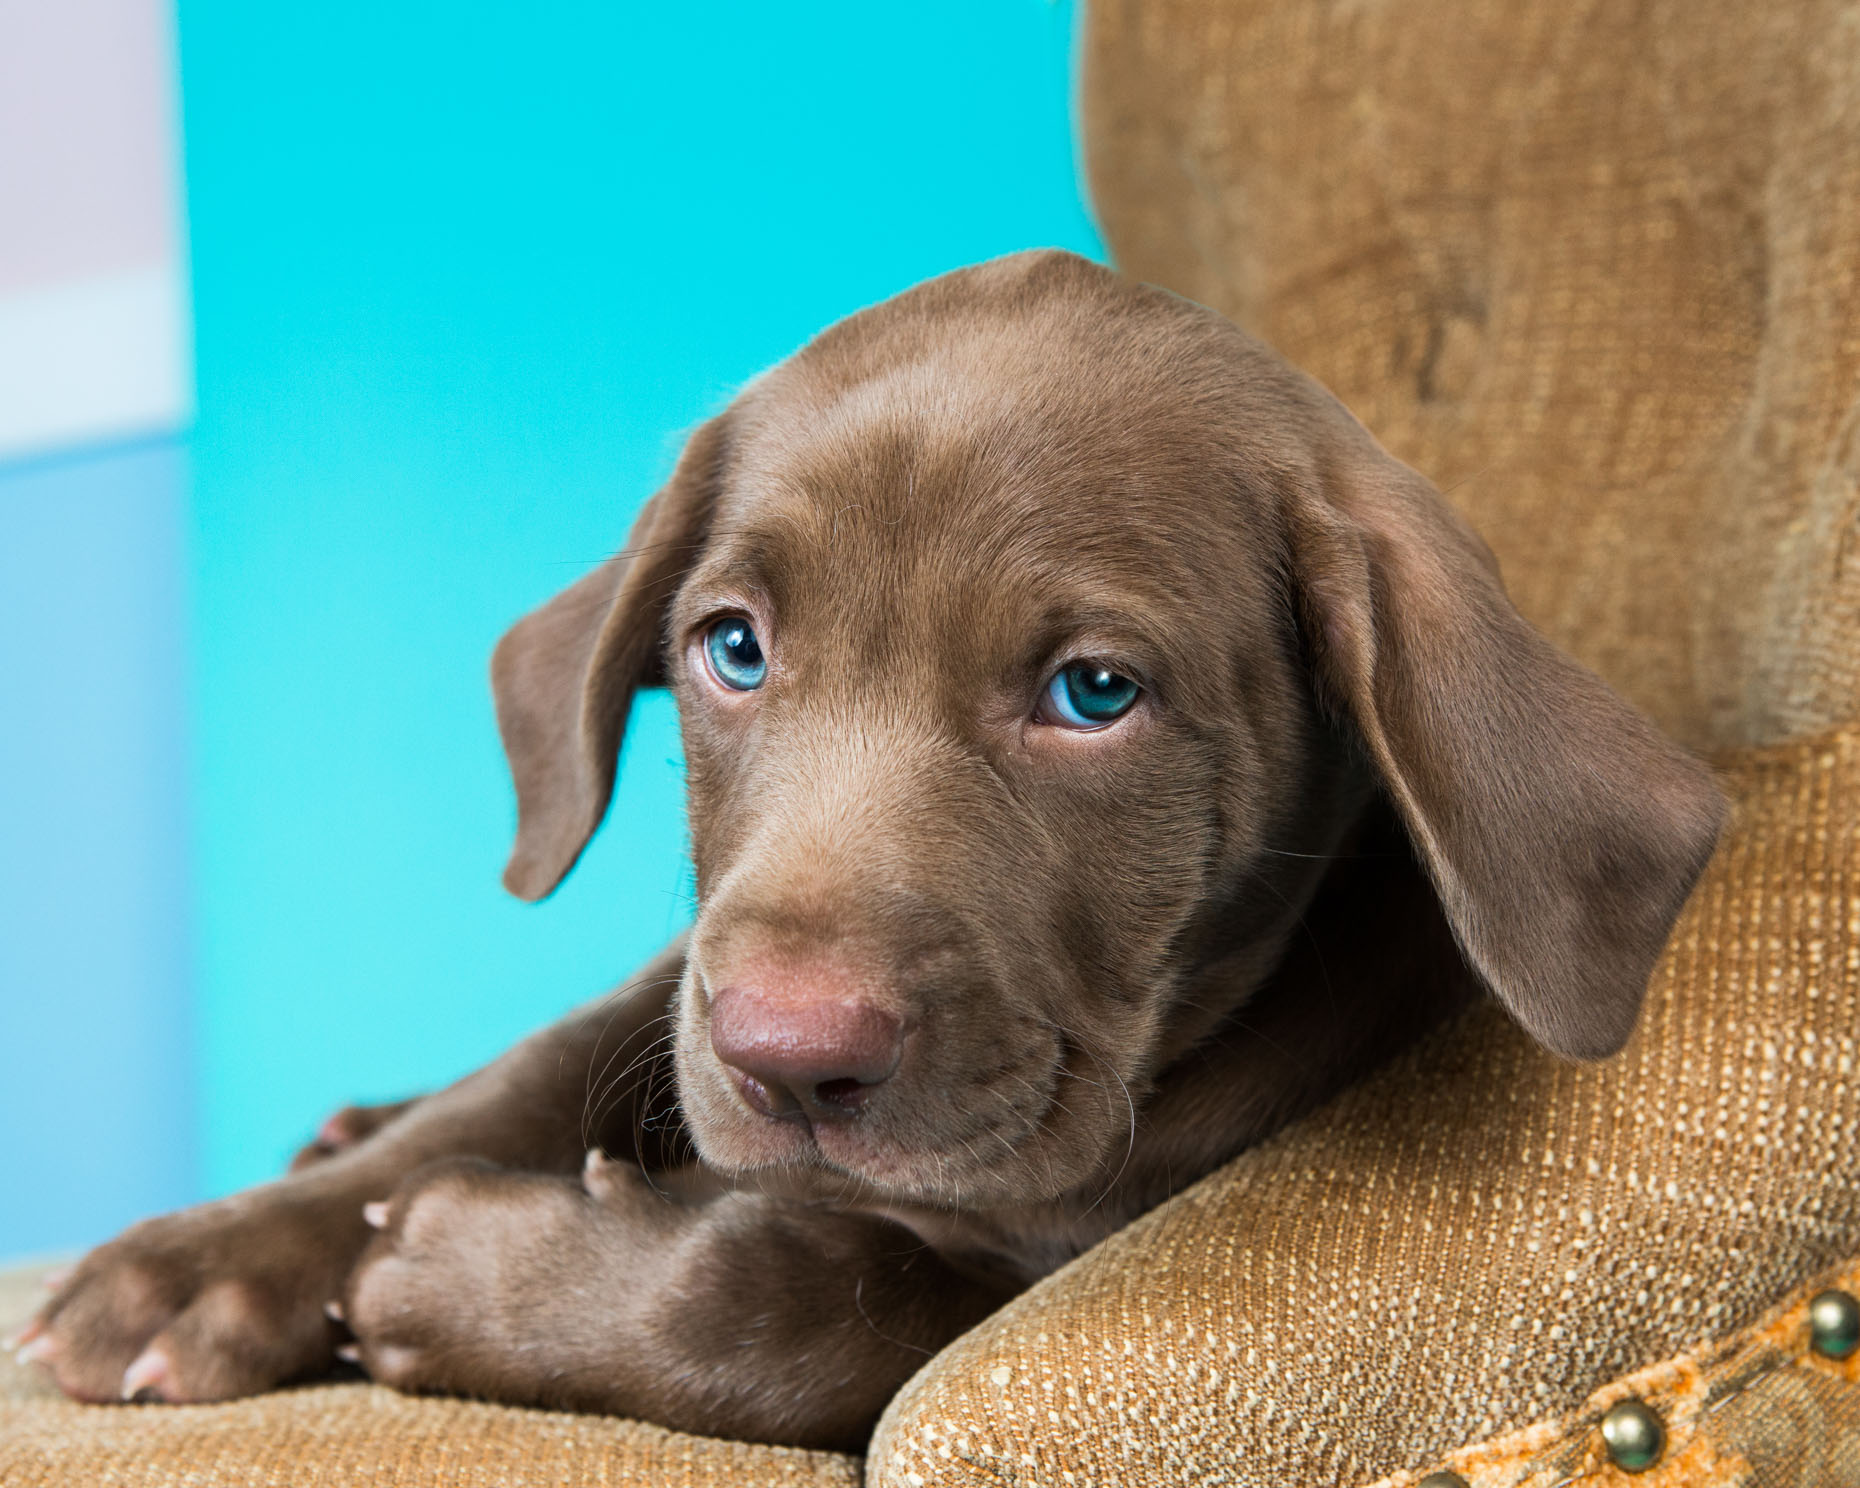 Dog Photography  |  Grey Puppy with Blue Eyes by Mark Rogers